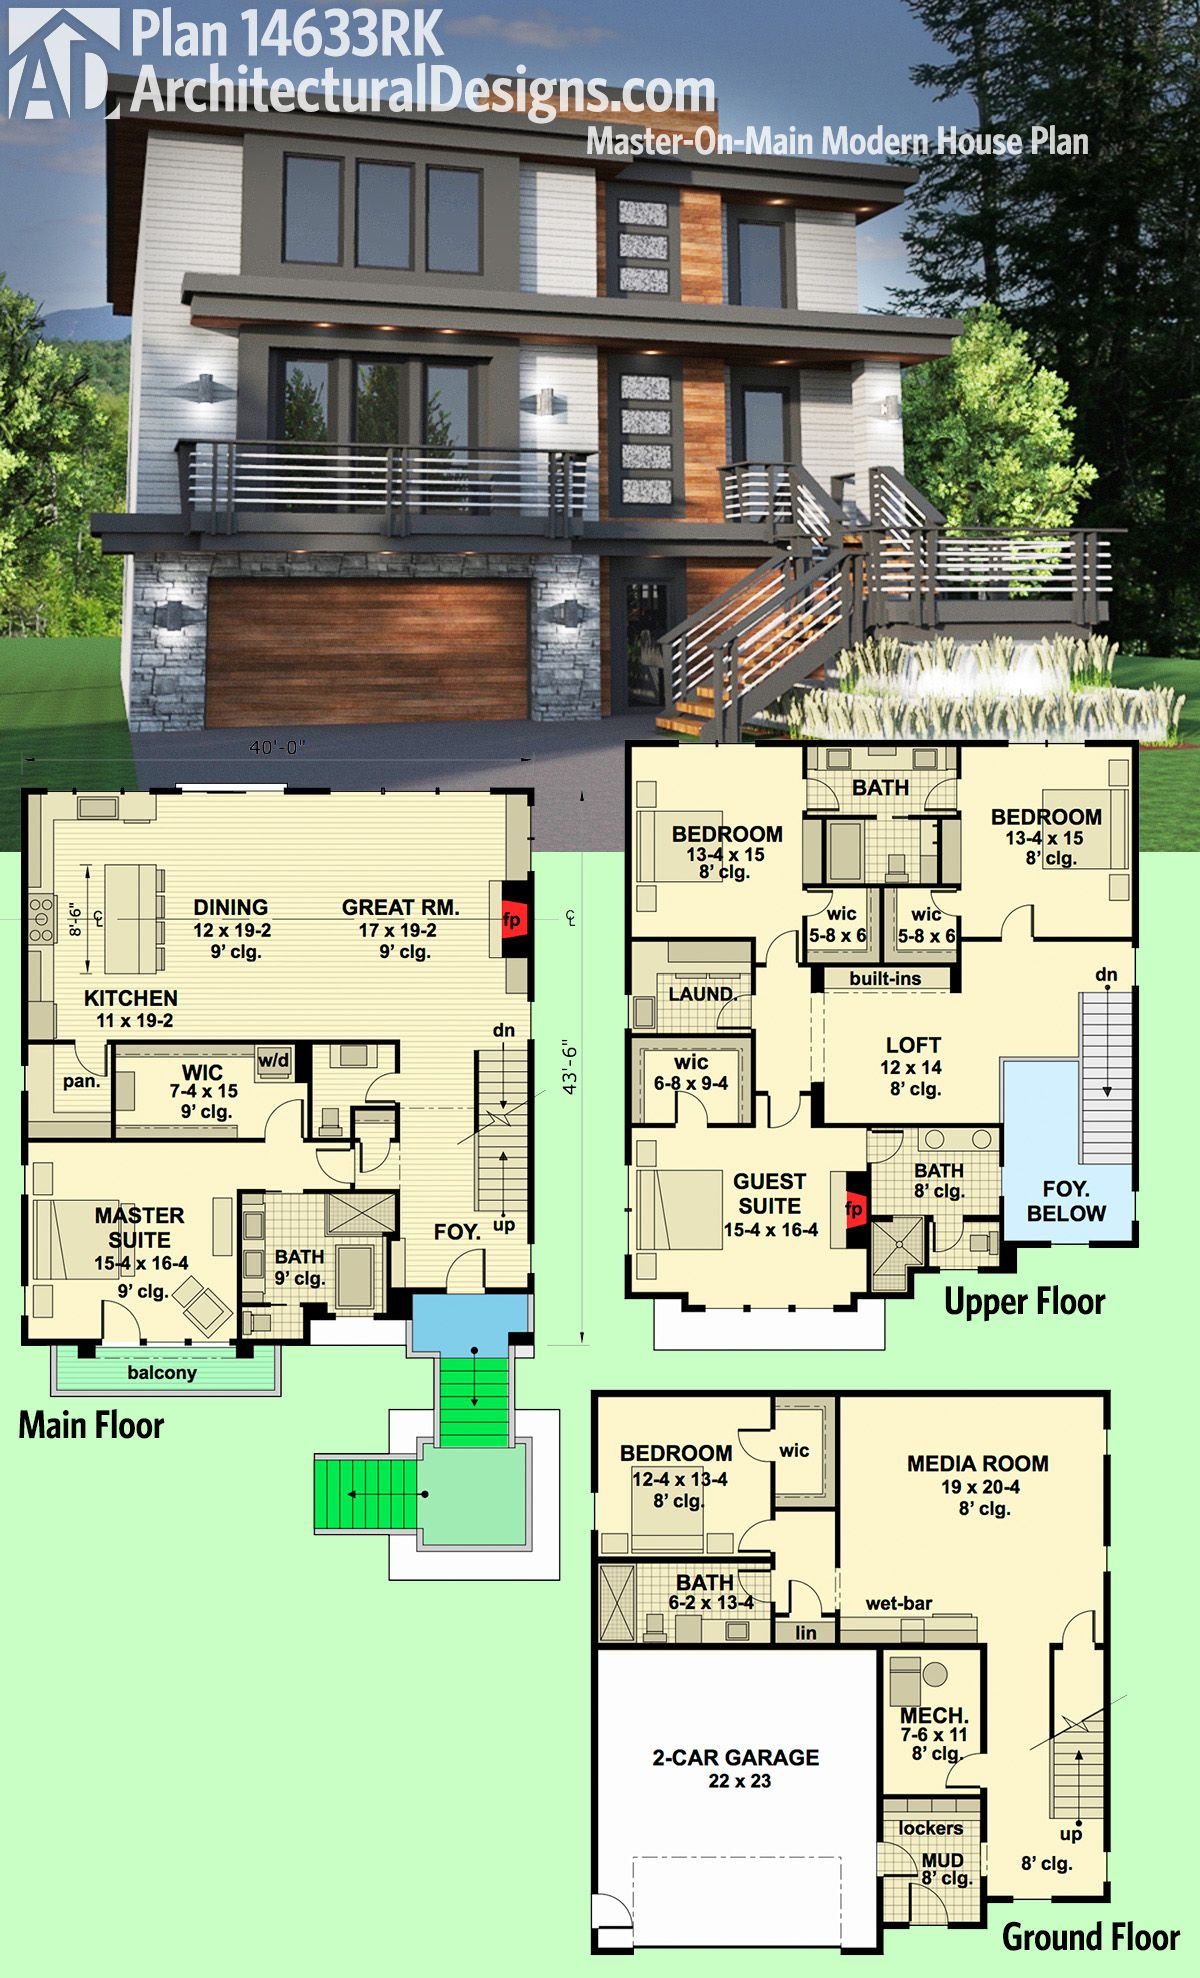 Plan 14633rk master on main modern house plan modern for Buy house plans